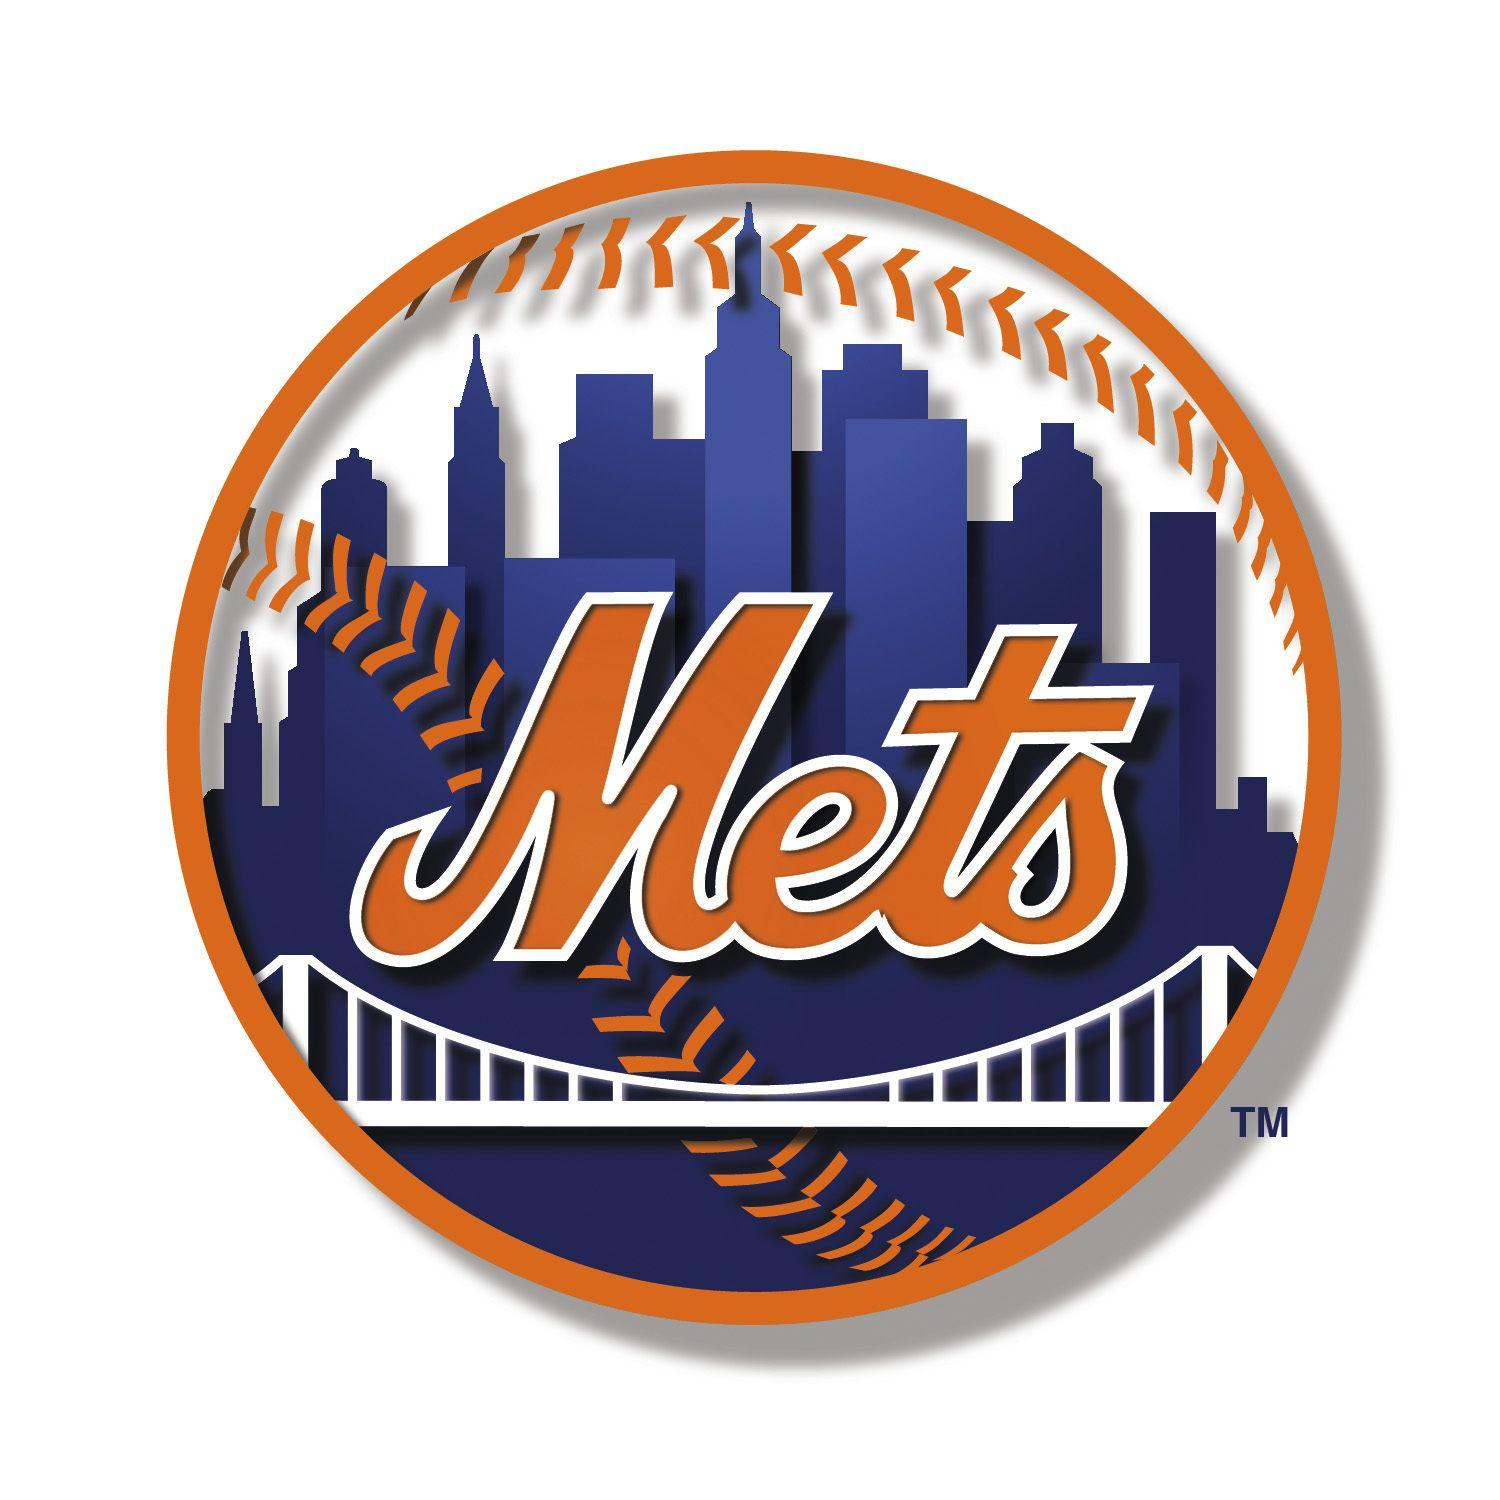 New York Mets images mets logo HD wallpaper and background photos ...